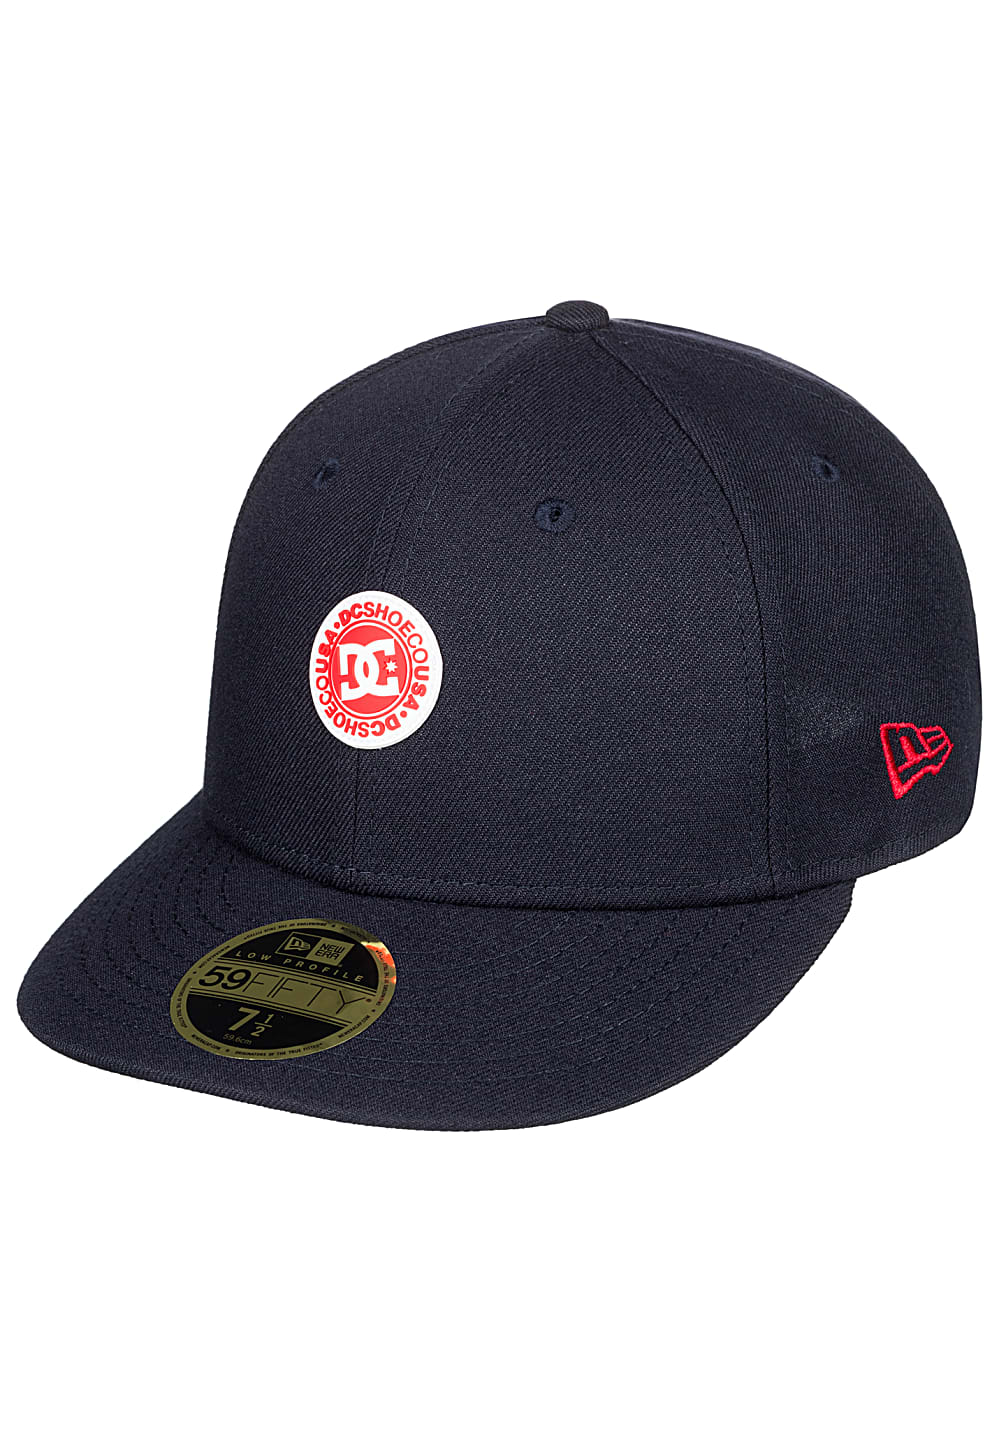 DC Rally Up Fitted Cap - Blau   Accessoires > Caps > Fitted Caps   DC